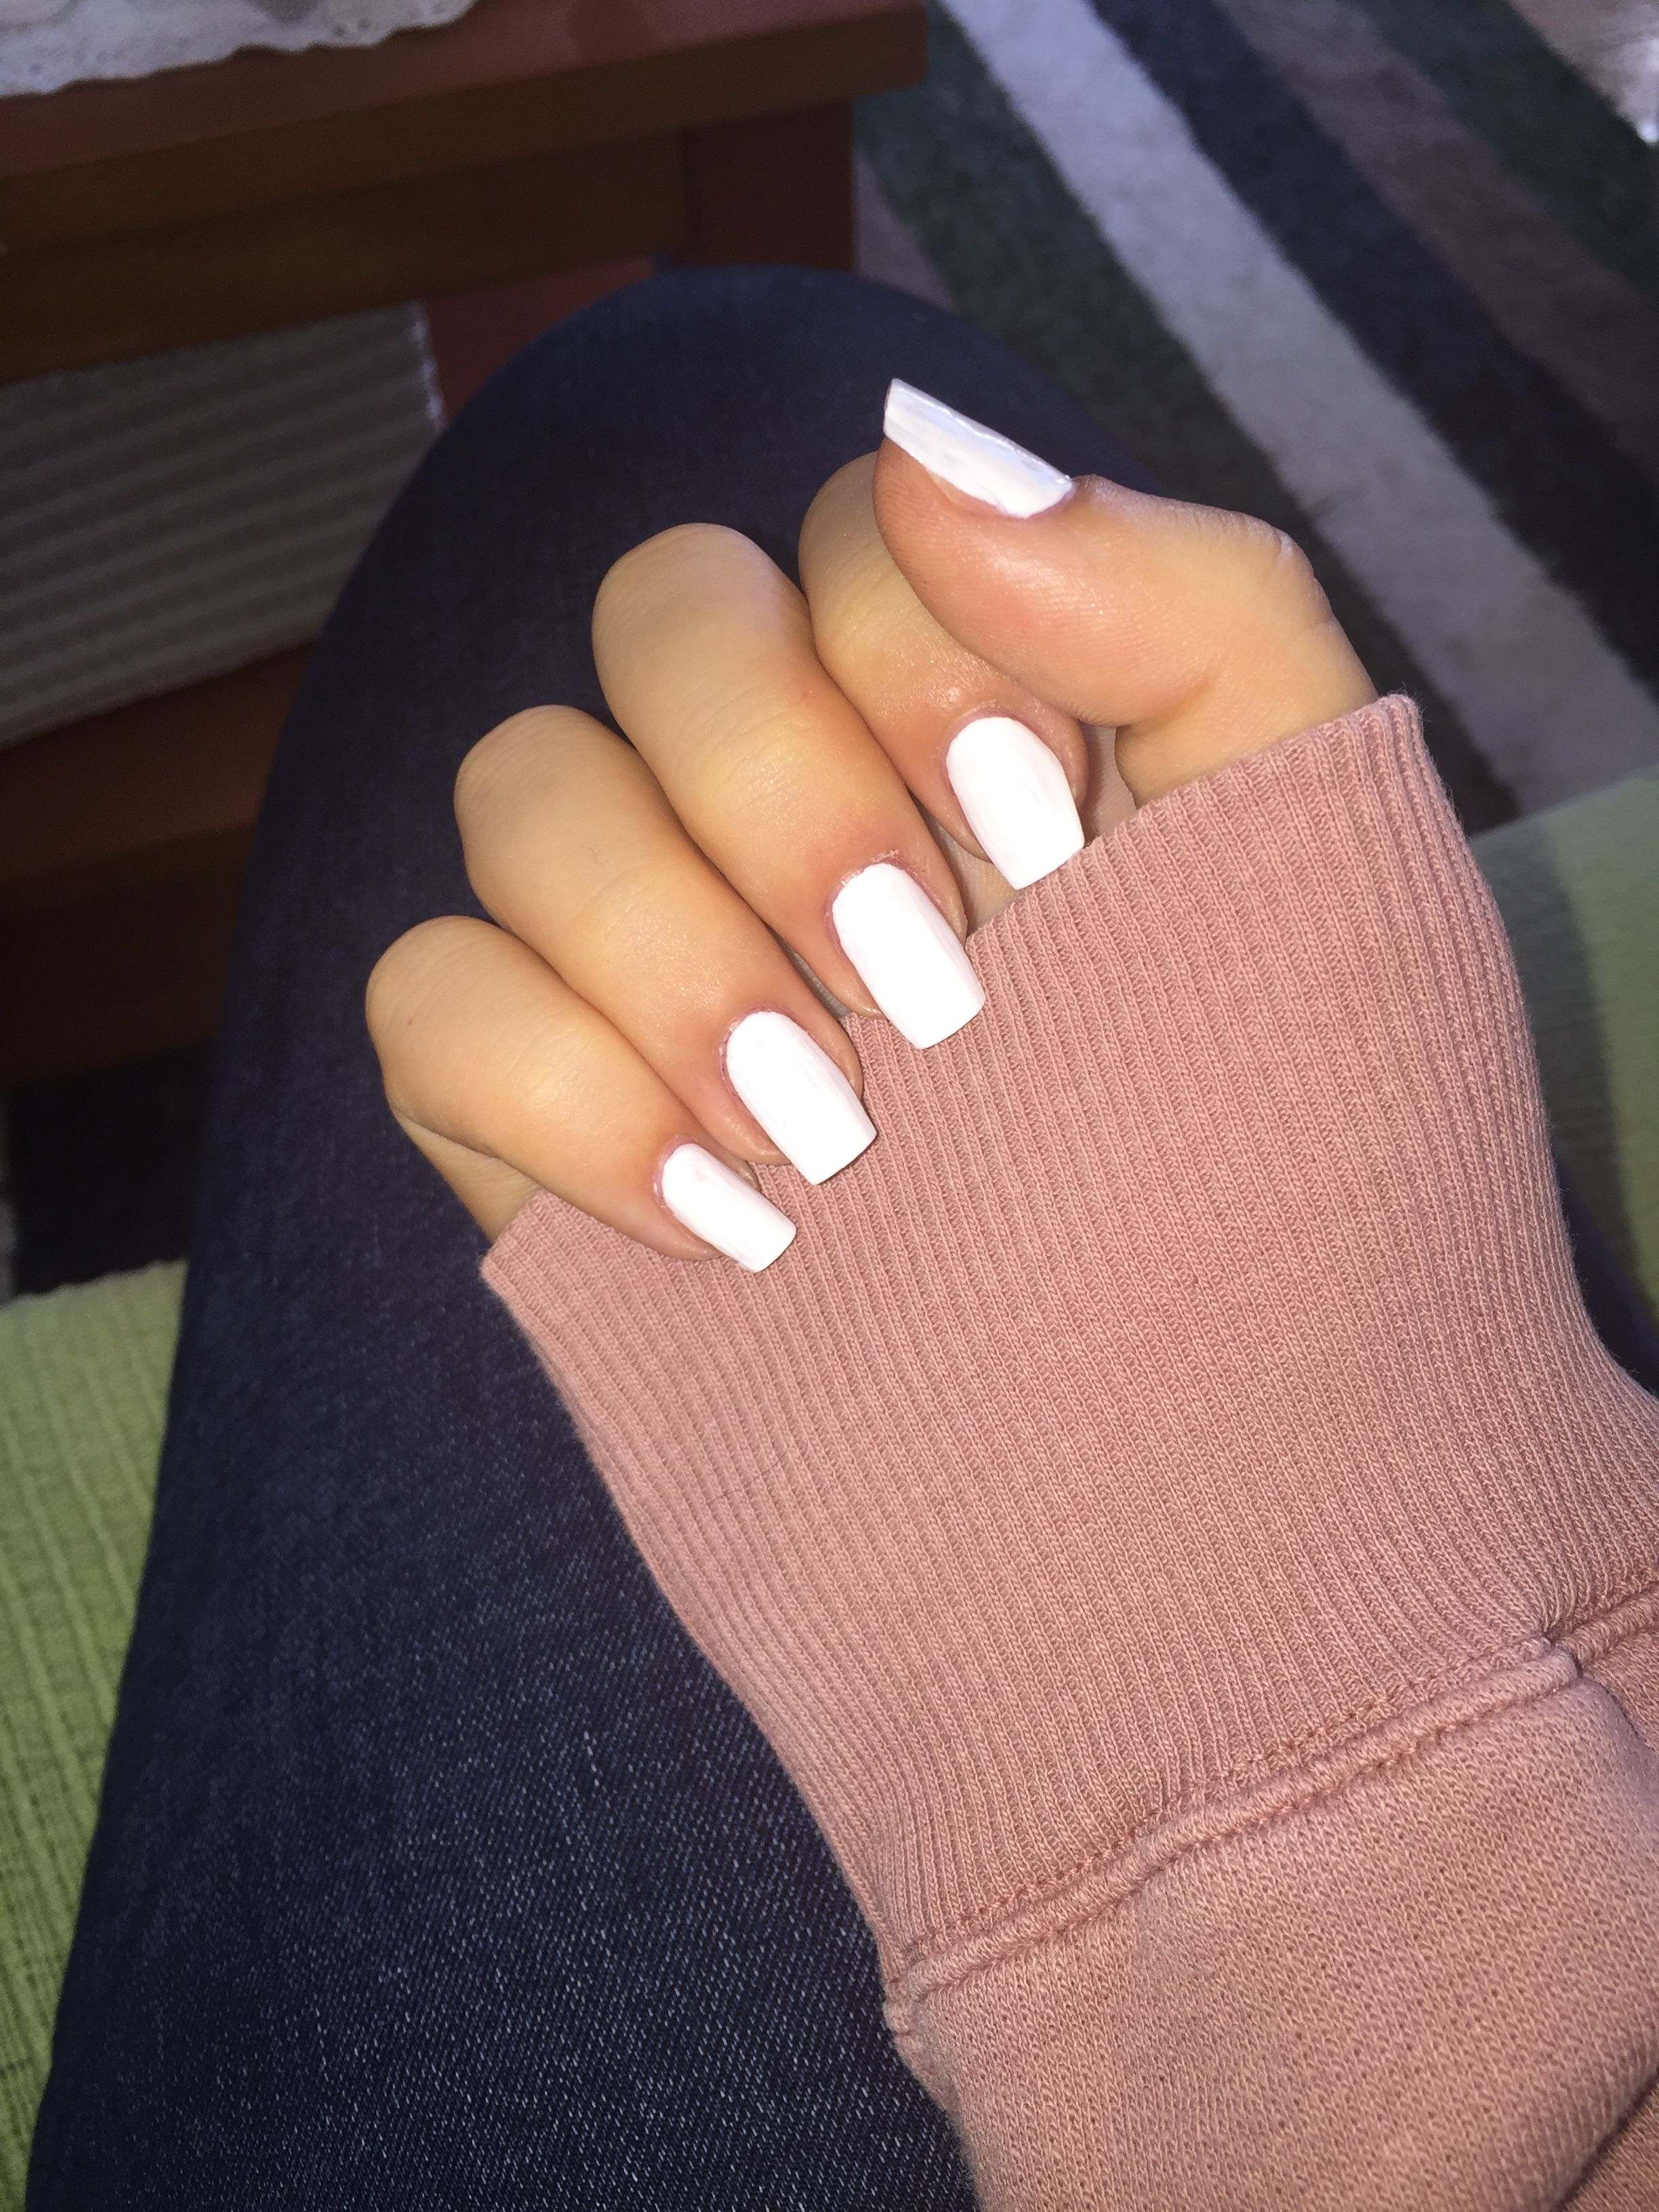 Pin By Floor Cid On Nails White Acrylic Nails Long White Nails Square Nail Designs